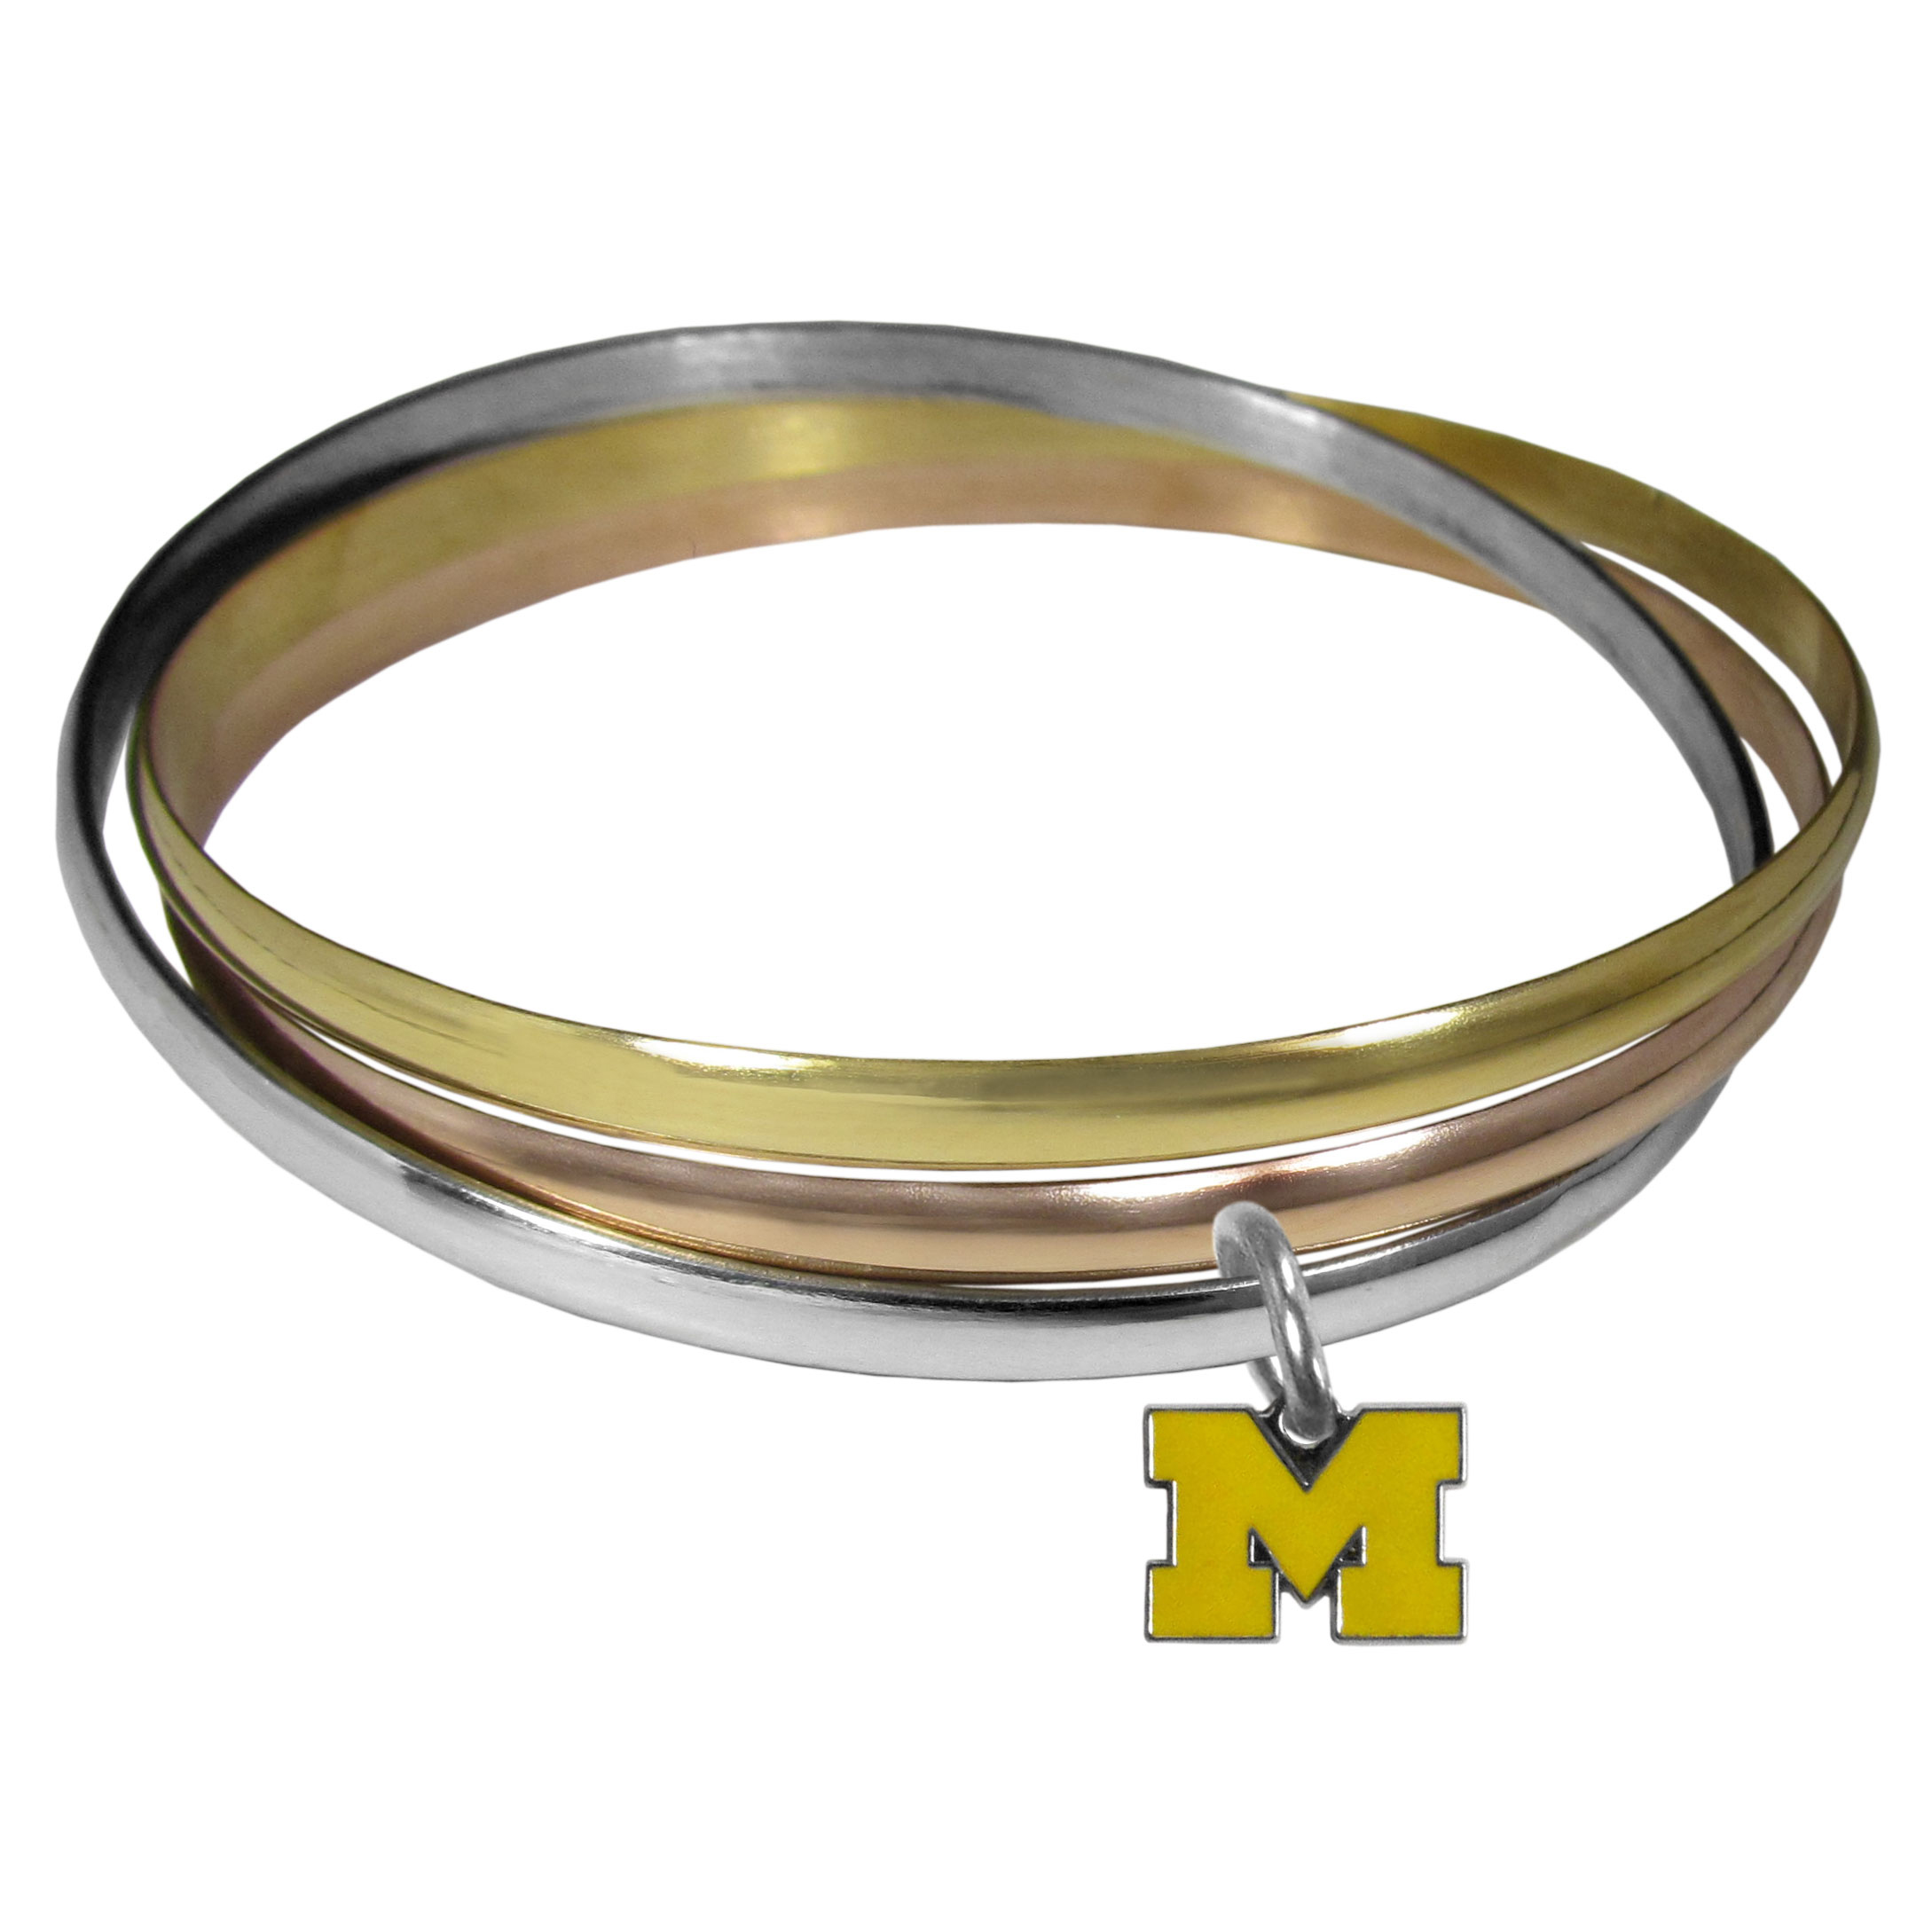 Michigan Wolverines Tri-color Bangle Bracelet - These beautiful bangles come in a interlocking style and feature a fully cast Michigan Wolverines charm with enameled team colors. The bracelet has a silver toned bangle, gold tone bangle and brass toned bangle.